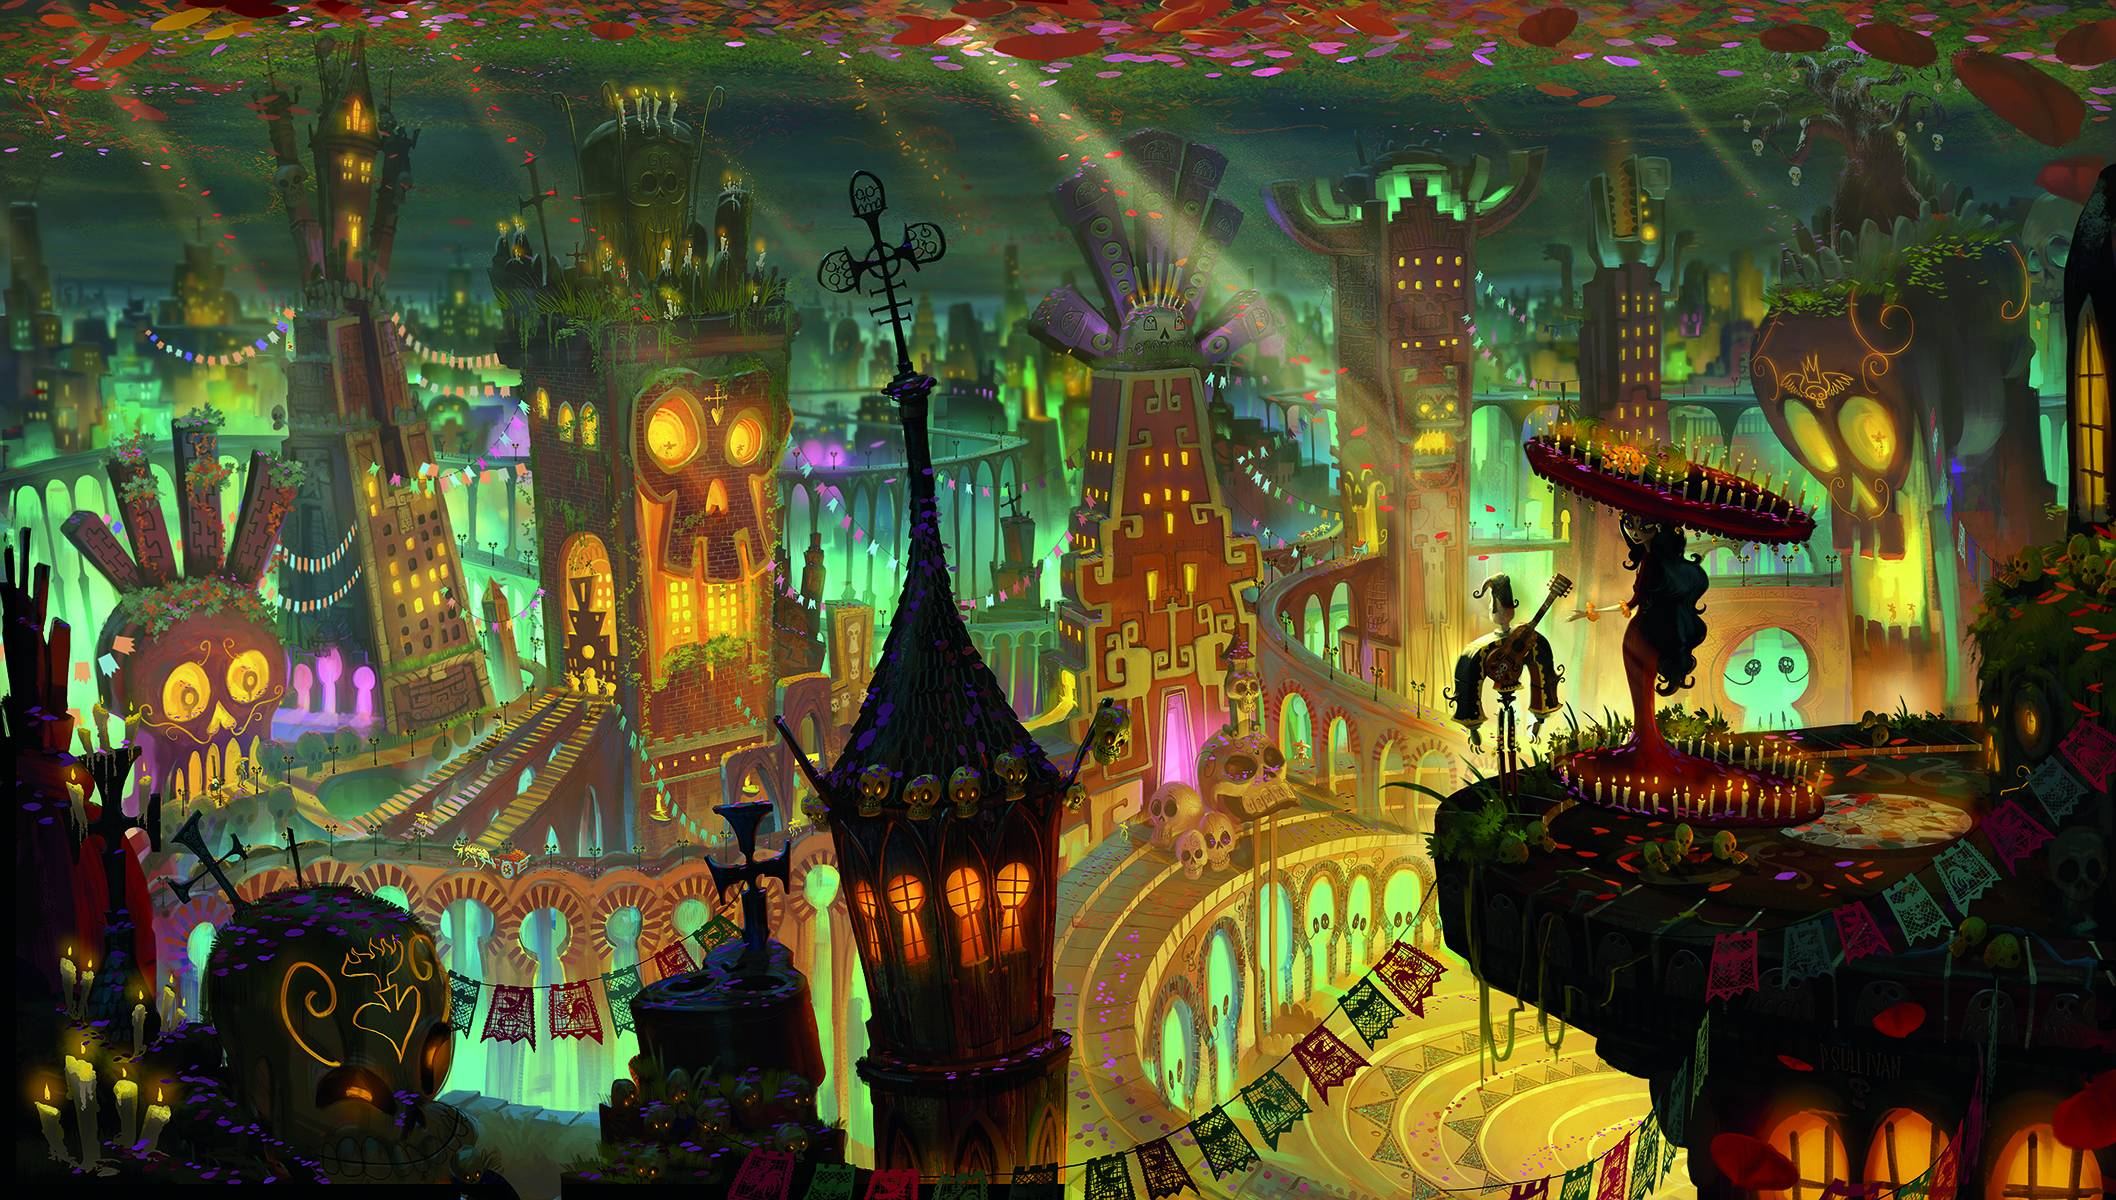 Most Viewed The Book Of Life Wallpapers 4k Wallpapers